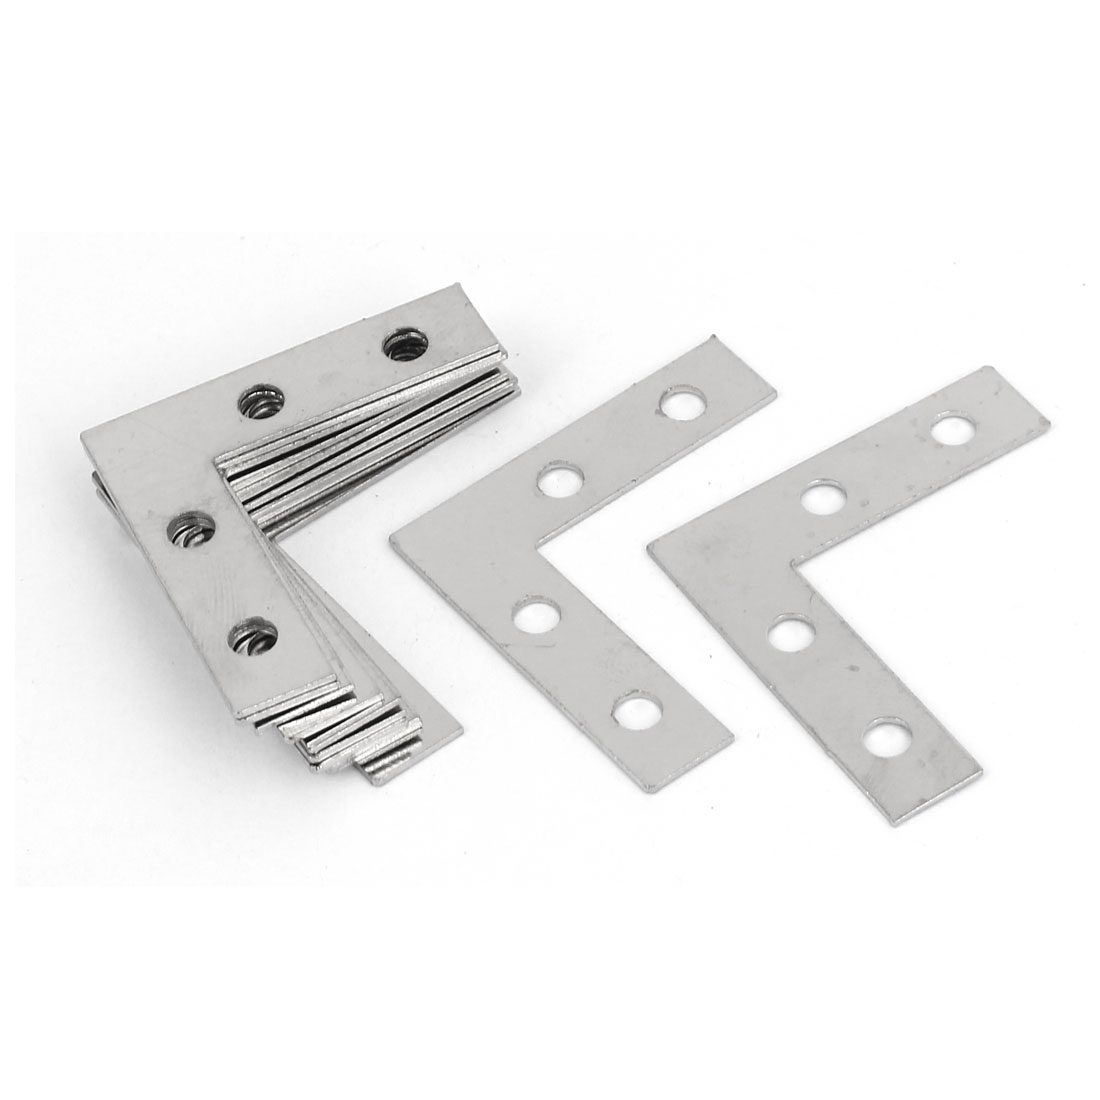 38mm x 38mm Angle Brackets Corner Braces Flat L Shape Repair Plates 12PCS